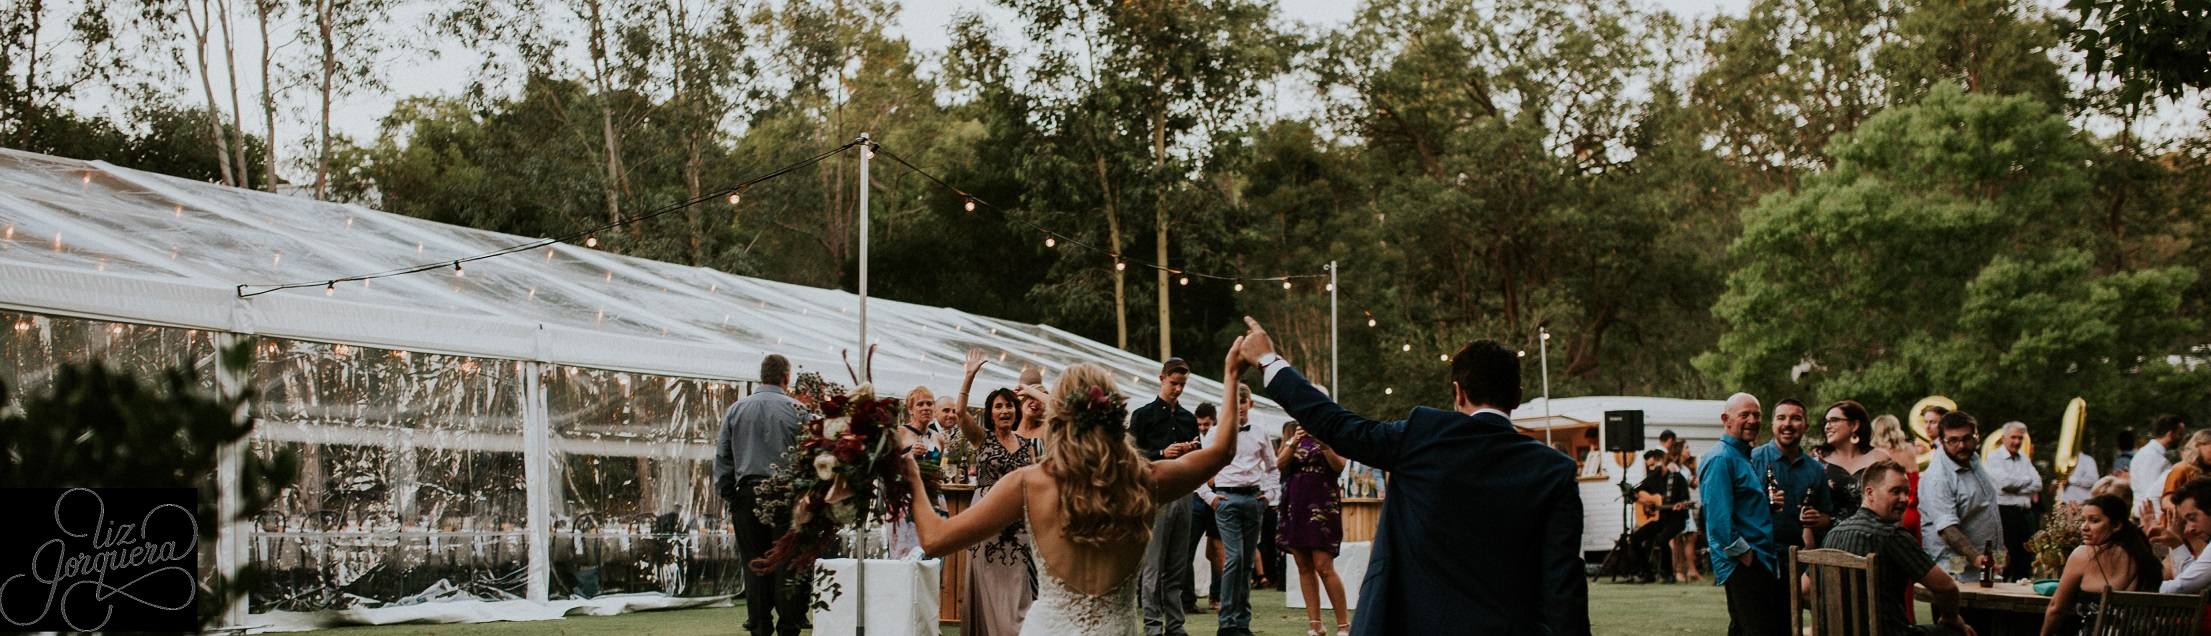 Perth Marquee Wedding Hire Full Packages